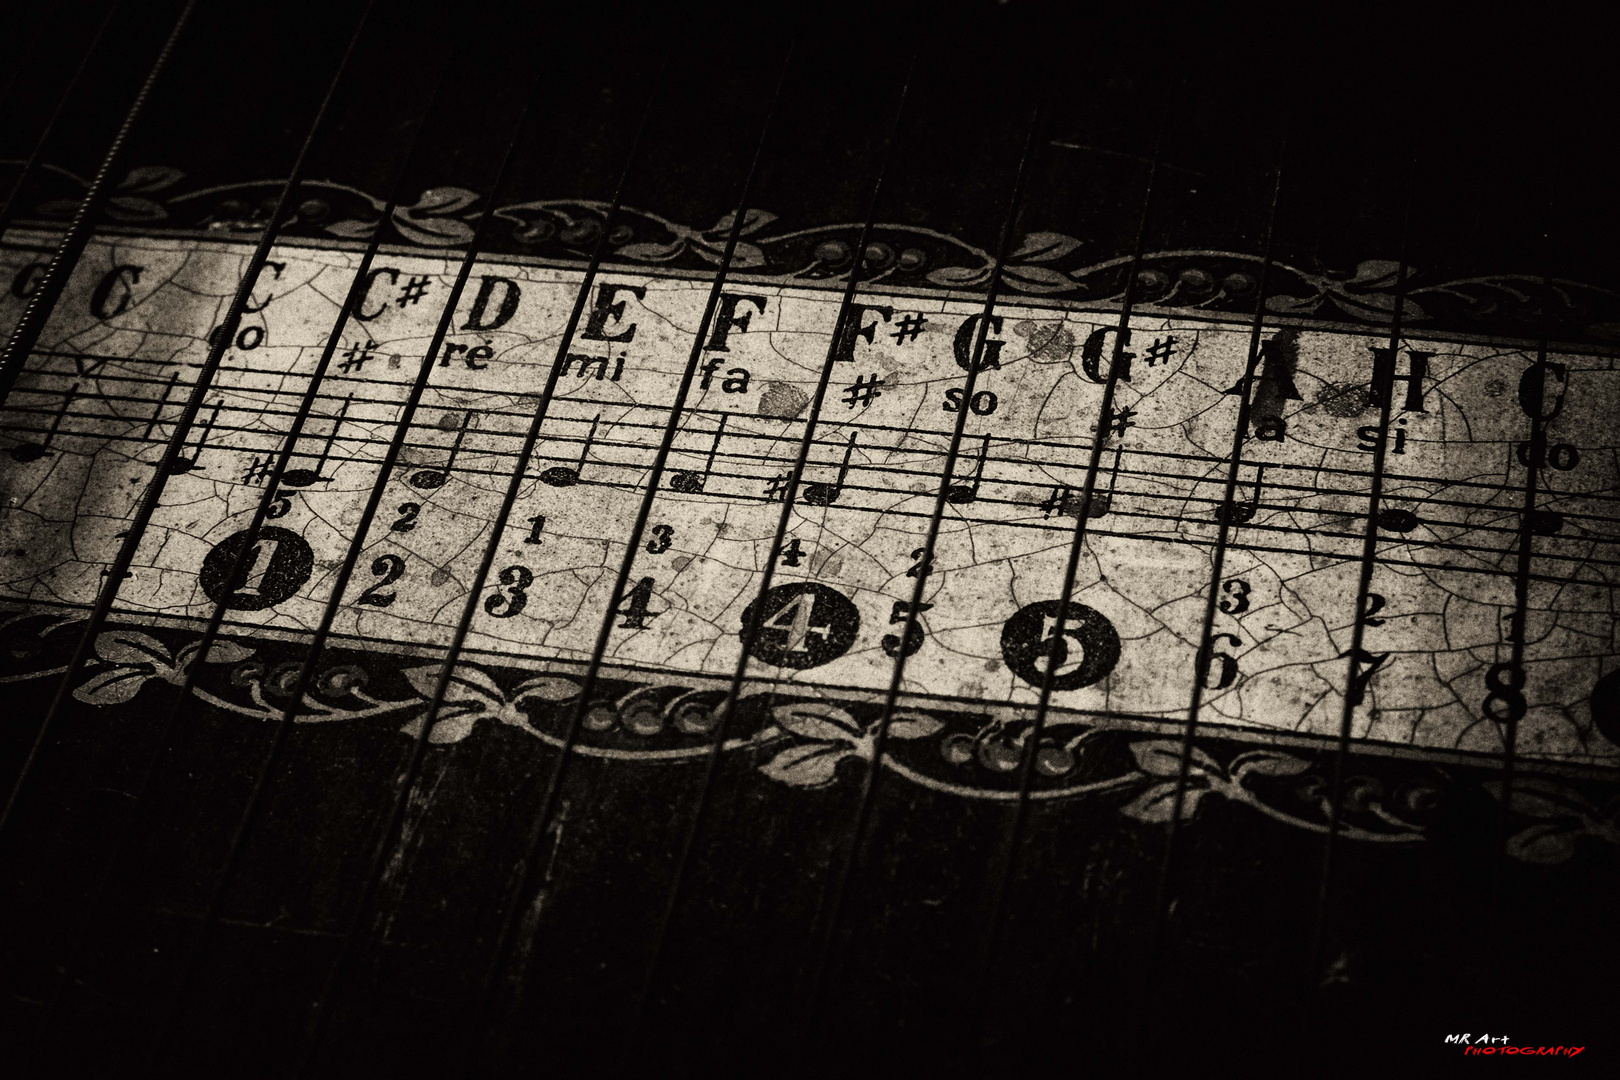 Die Zither